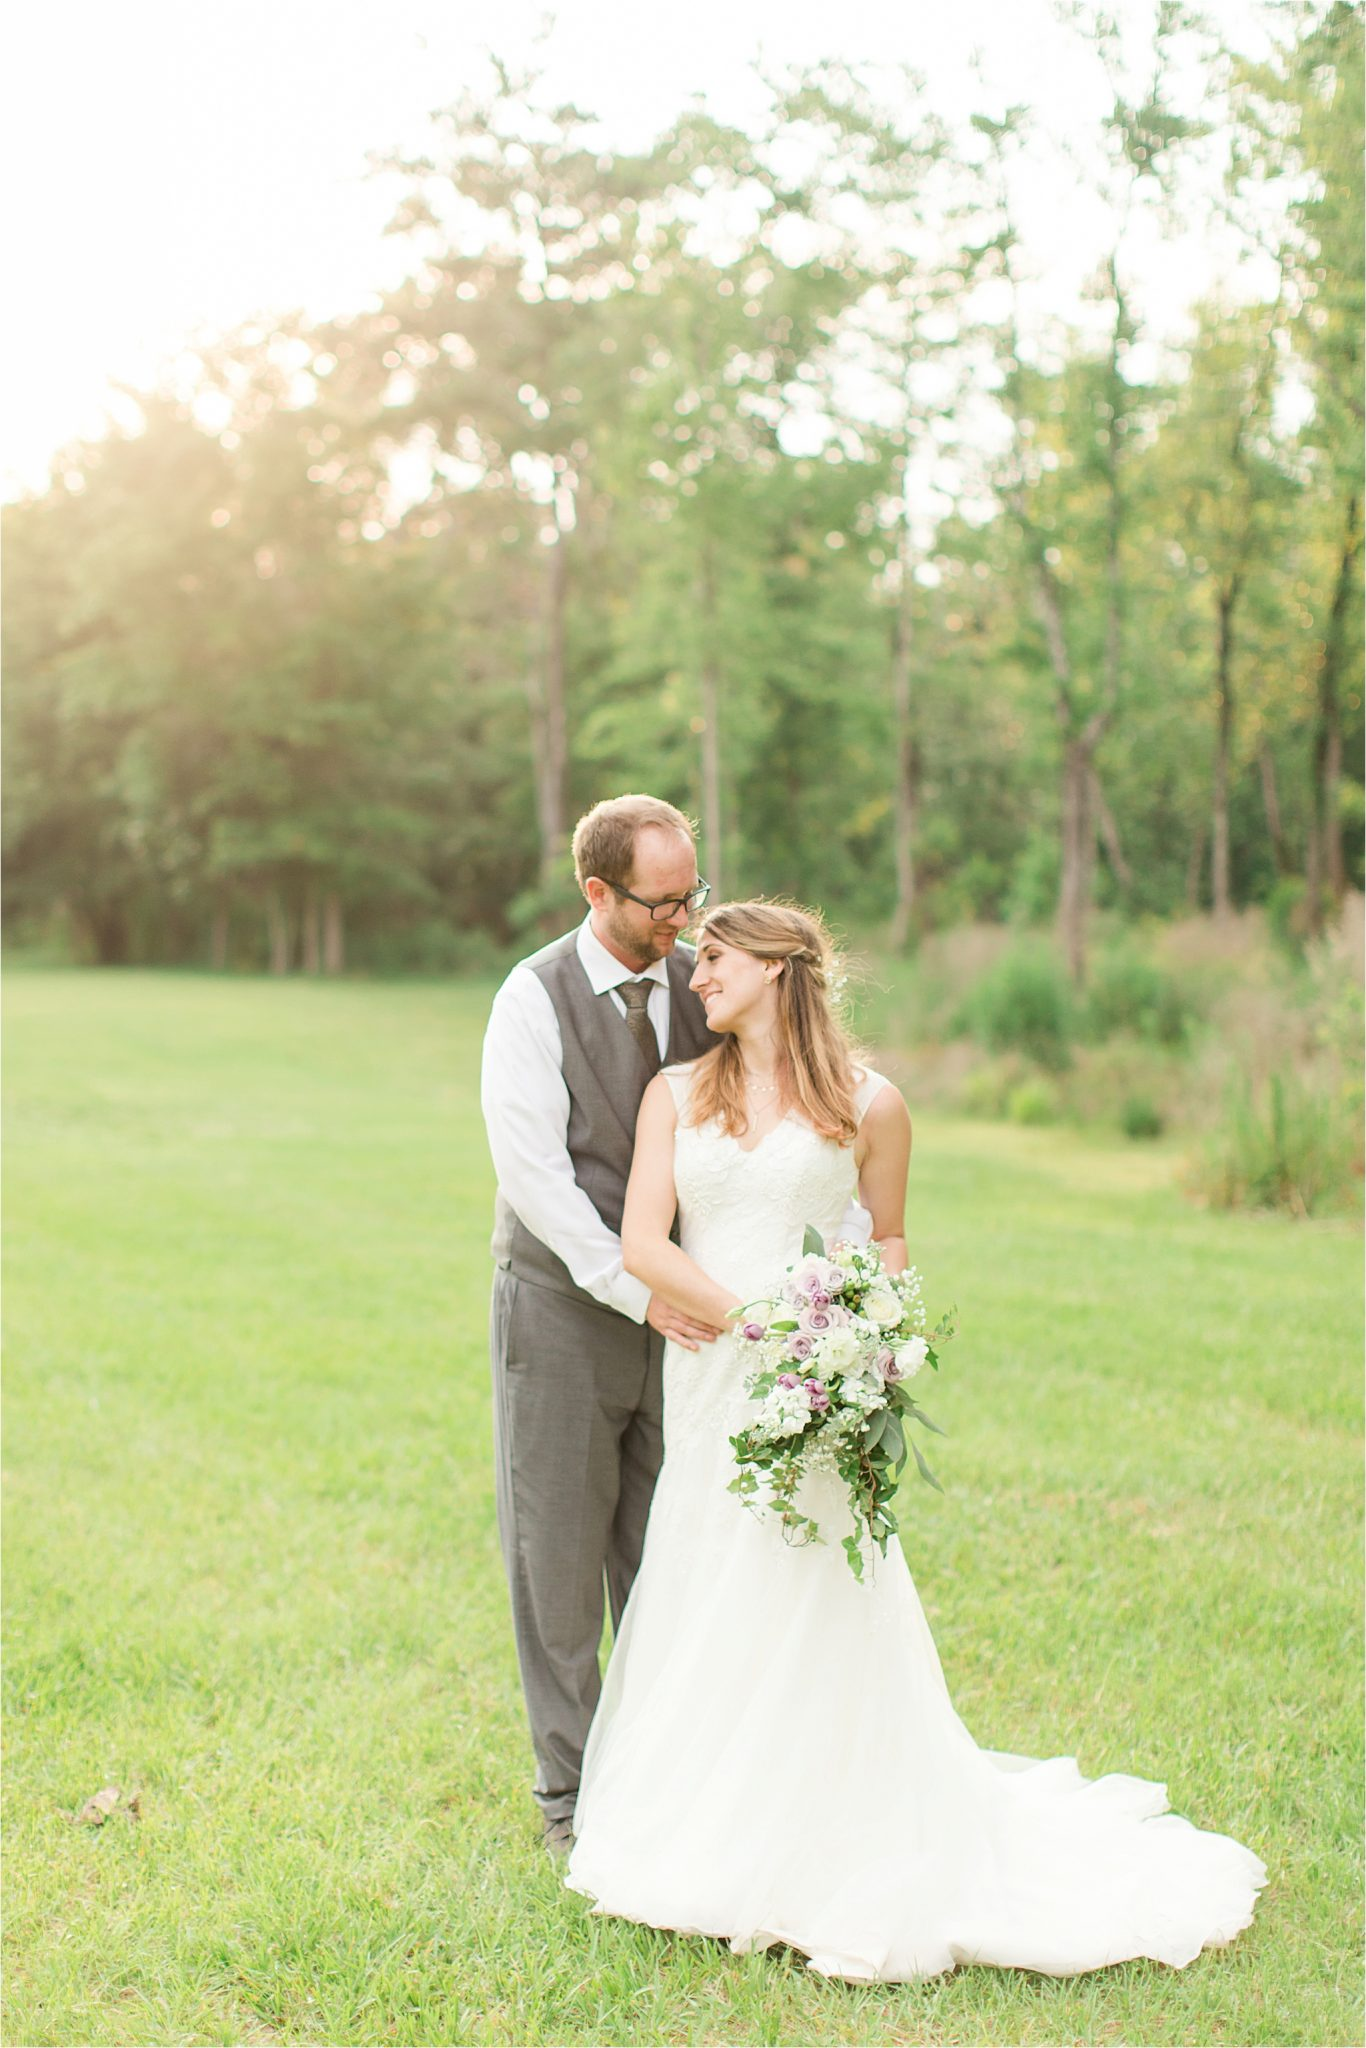 photos of the bride and groom-grey suit-groom in vest-lavender bouquet-backyard country wedding